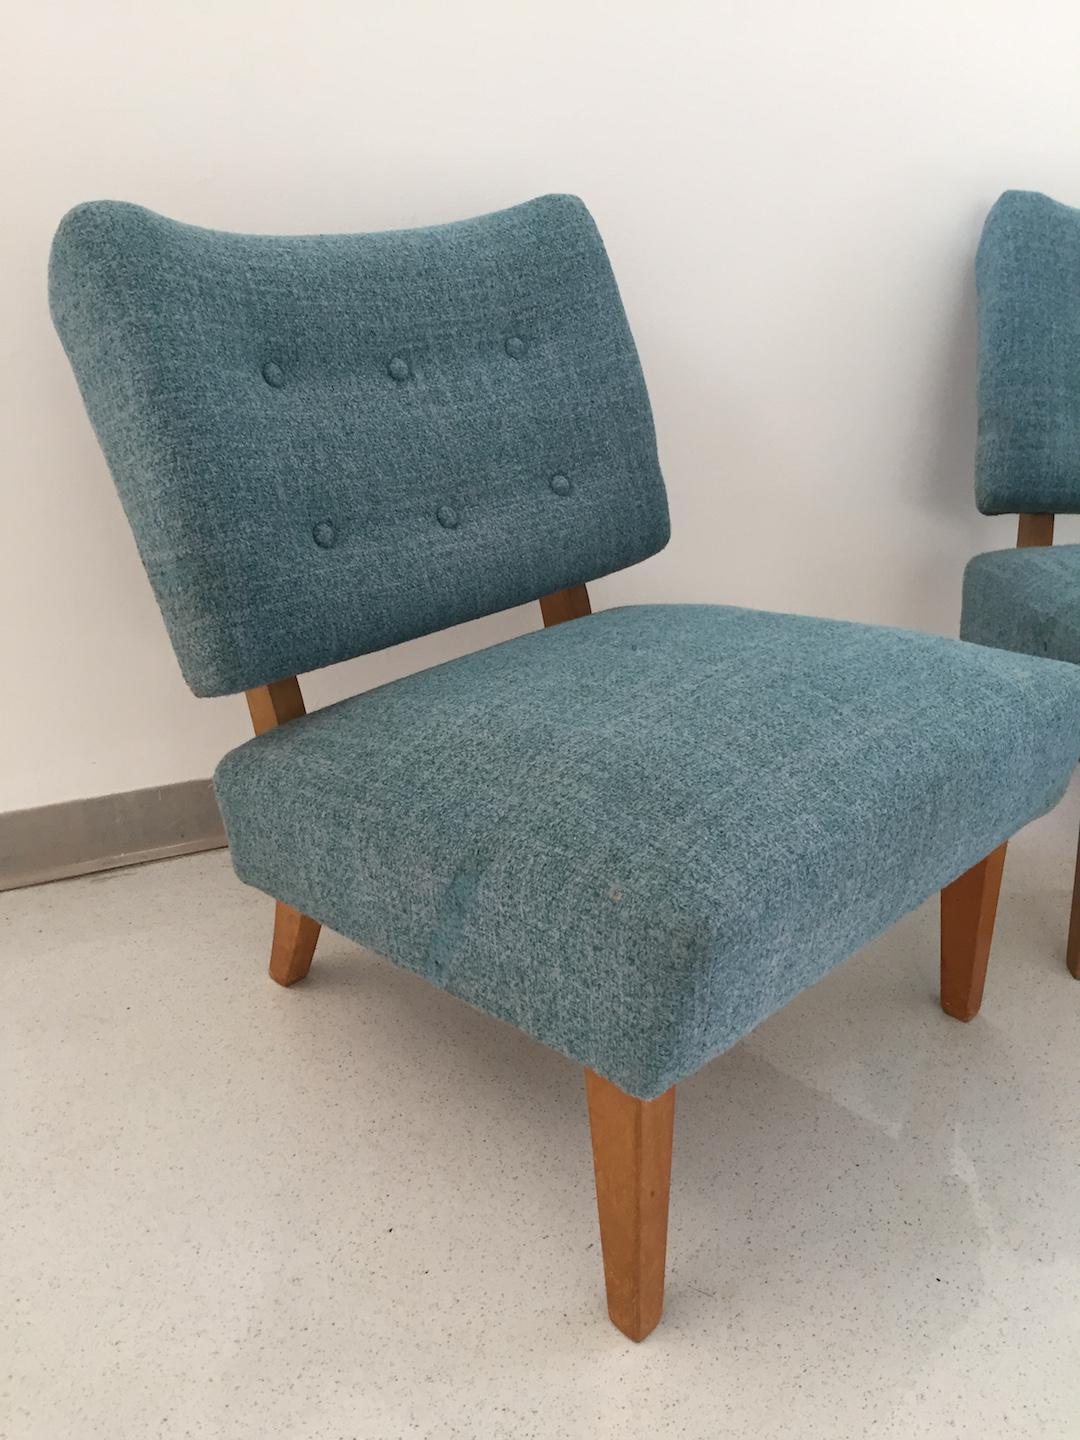 Superb Vintage Kroehler Teal Blue Accent Slipper Chairs   A Pair   Image 5 Of 11